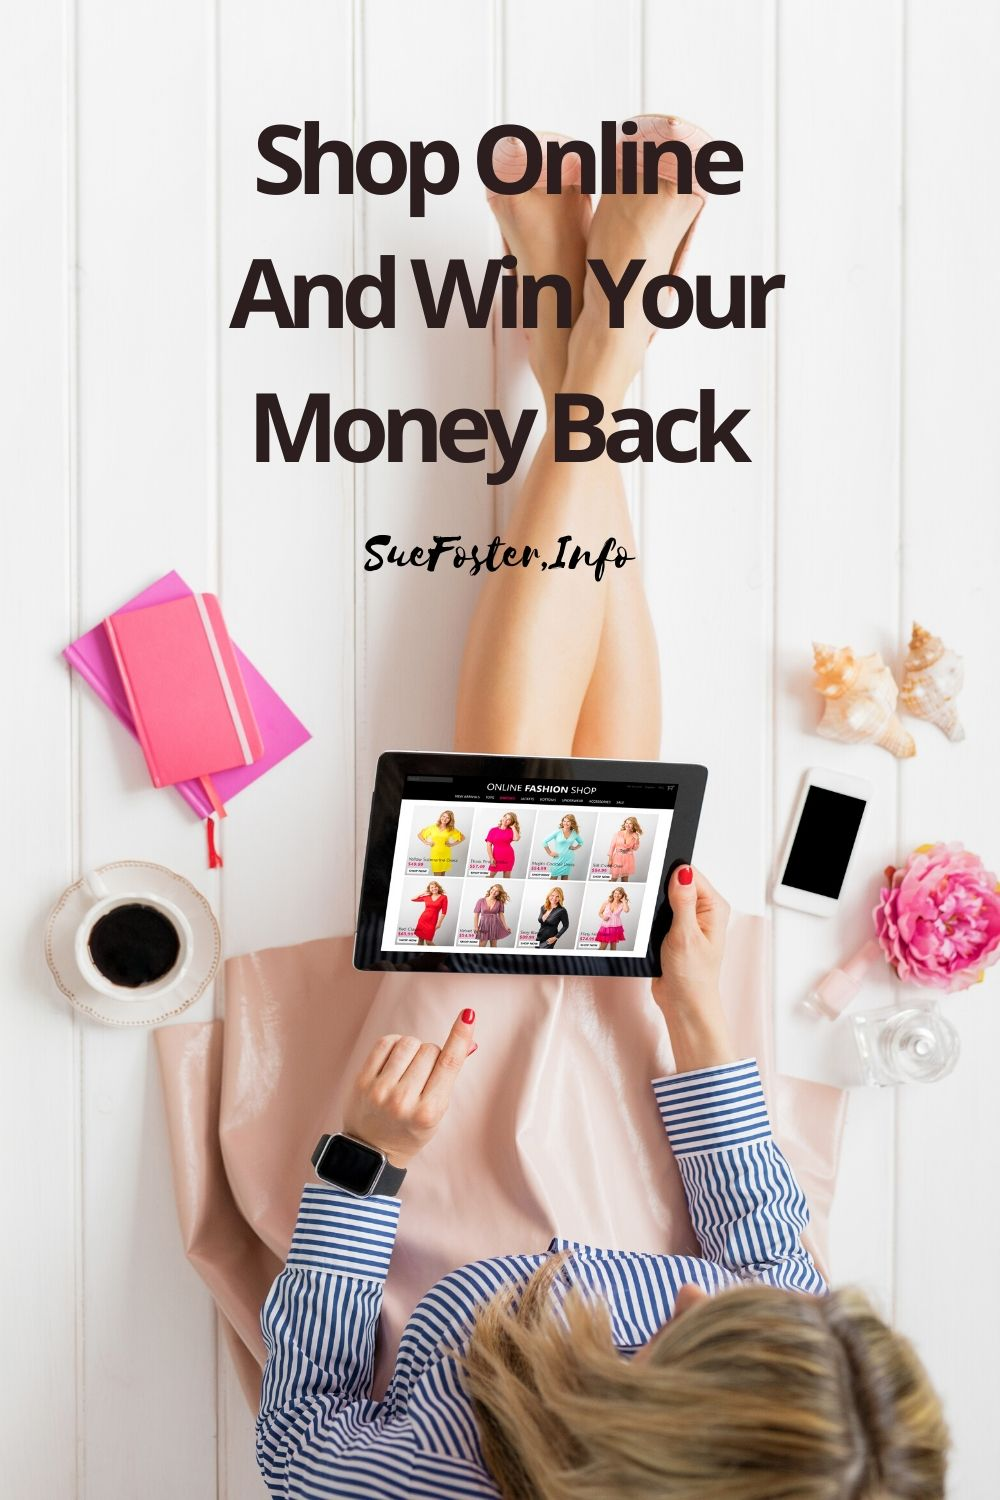 Shop online with over 600 top brands. Simply purchase what you would buy anyway and get a chance to win your money back.